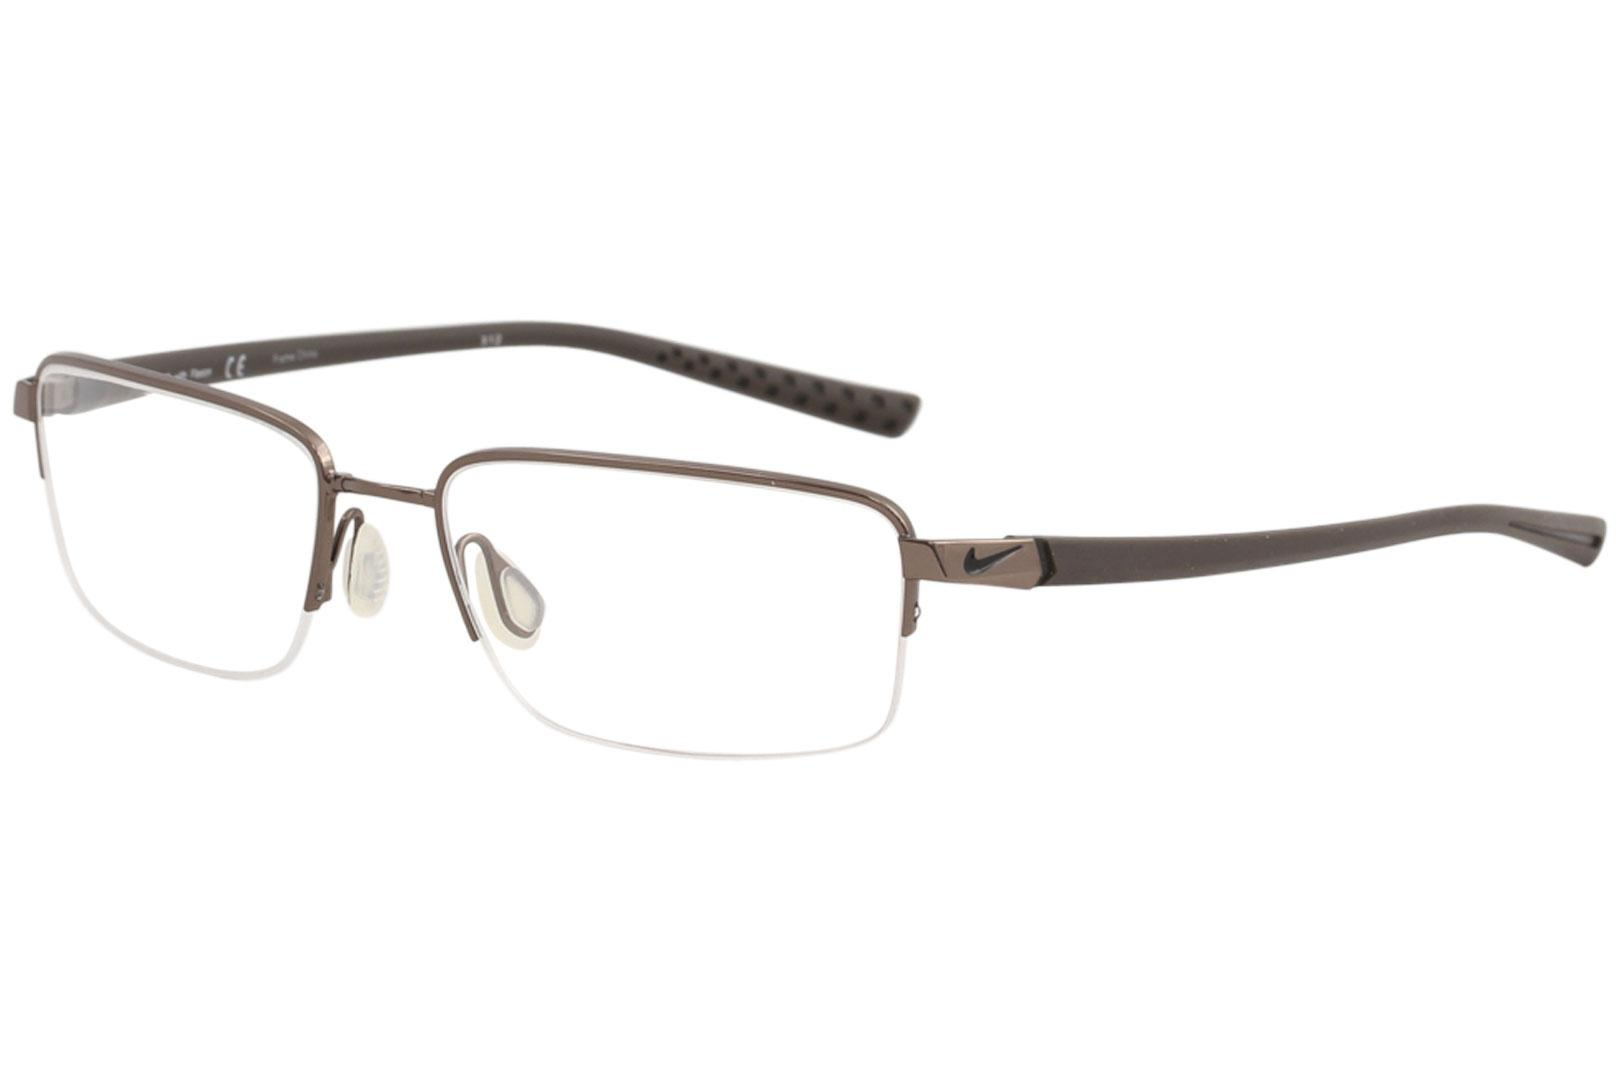 3575c127c4 Nike Men s Eyeglasses Flexon 4214 Half Rim Rectangle Optical Frame